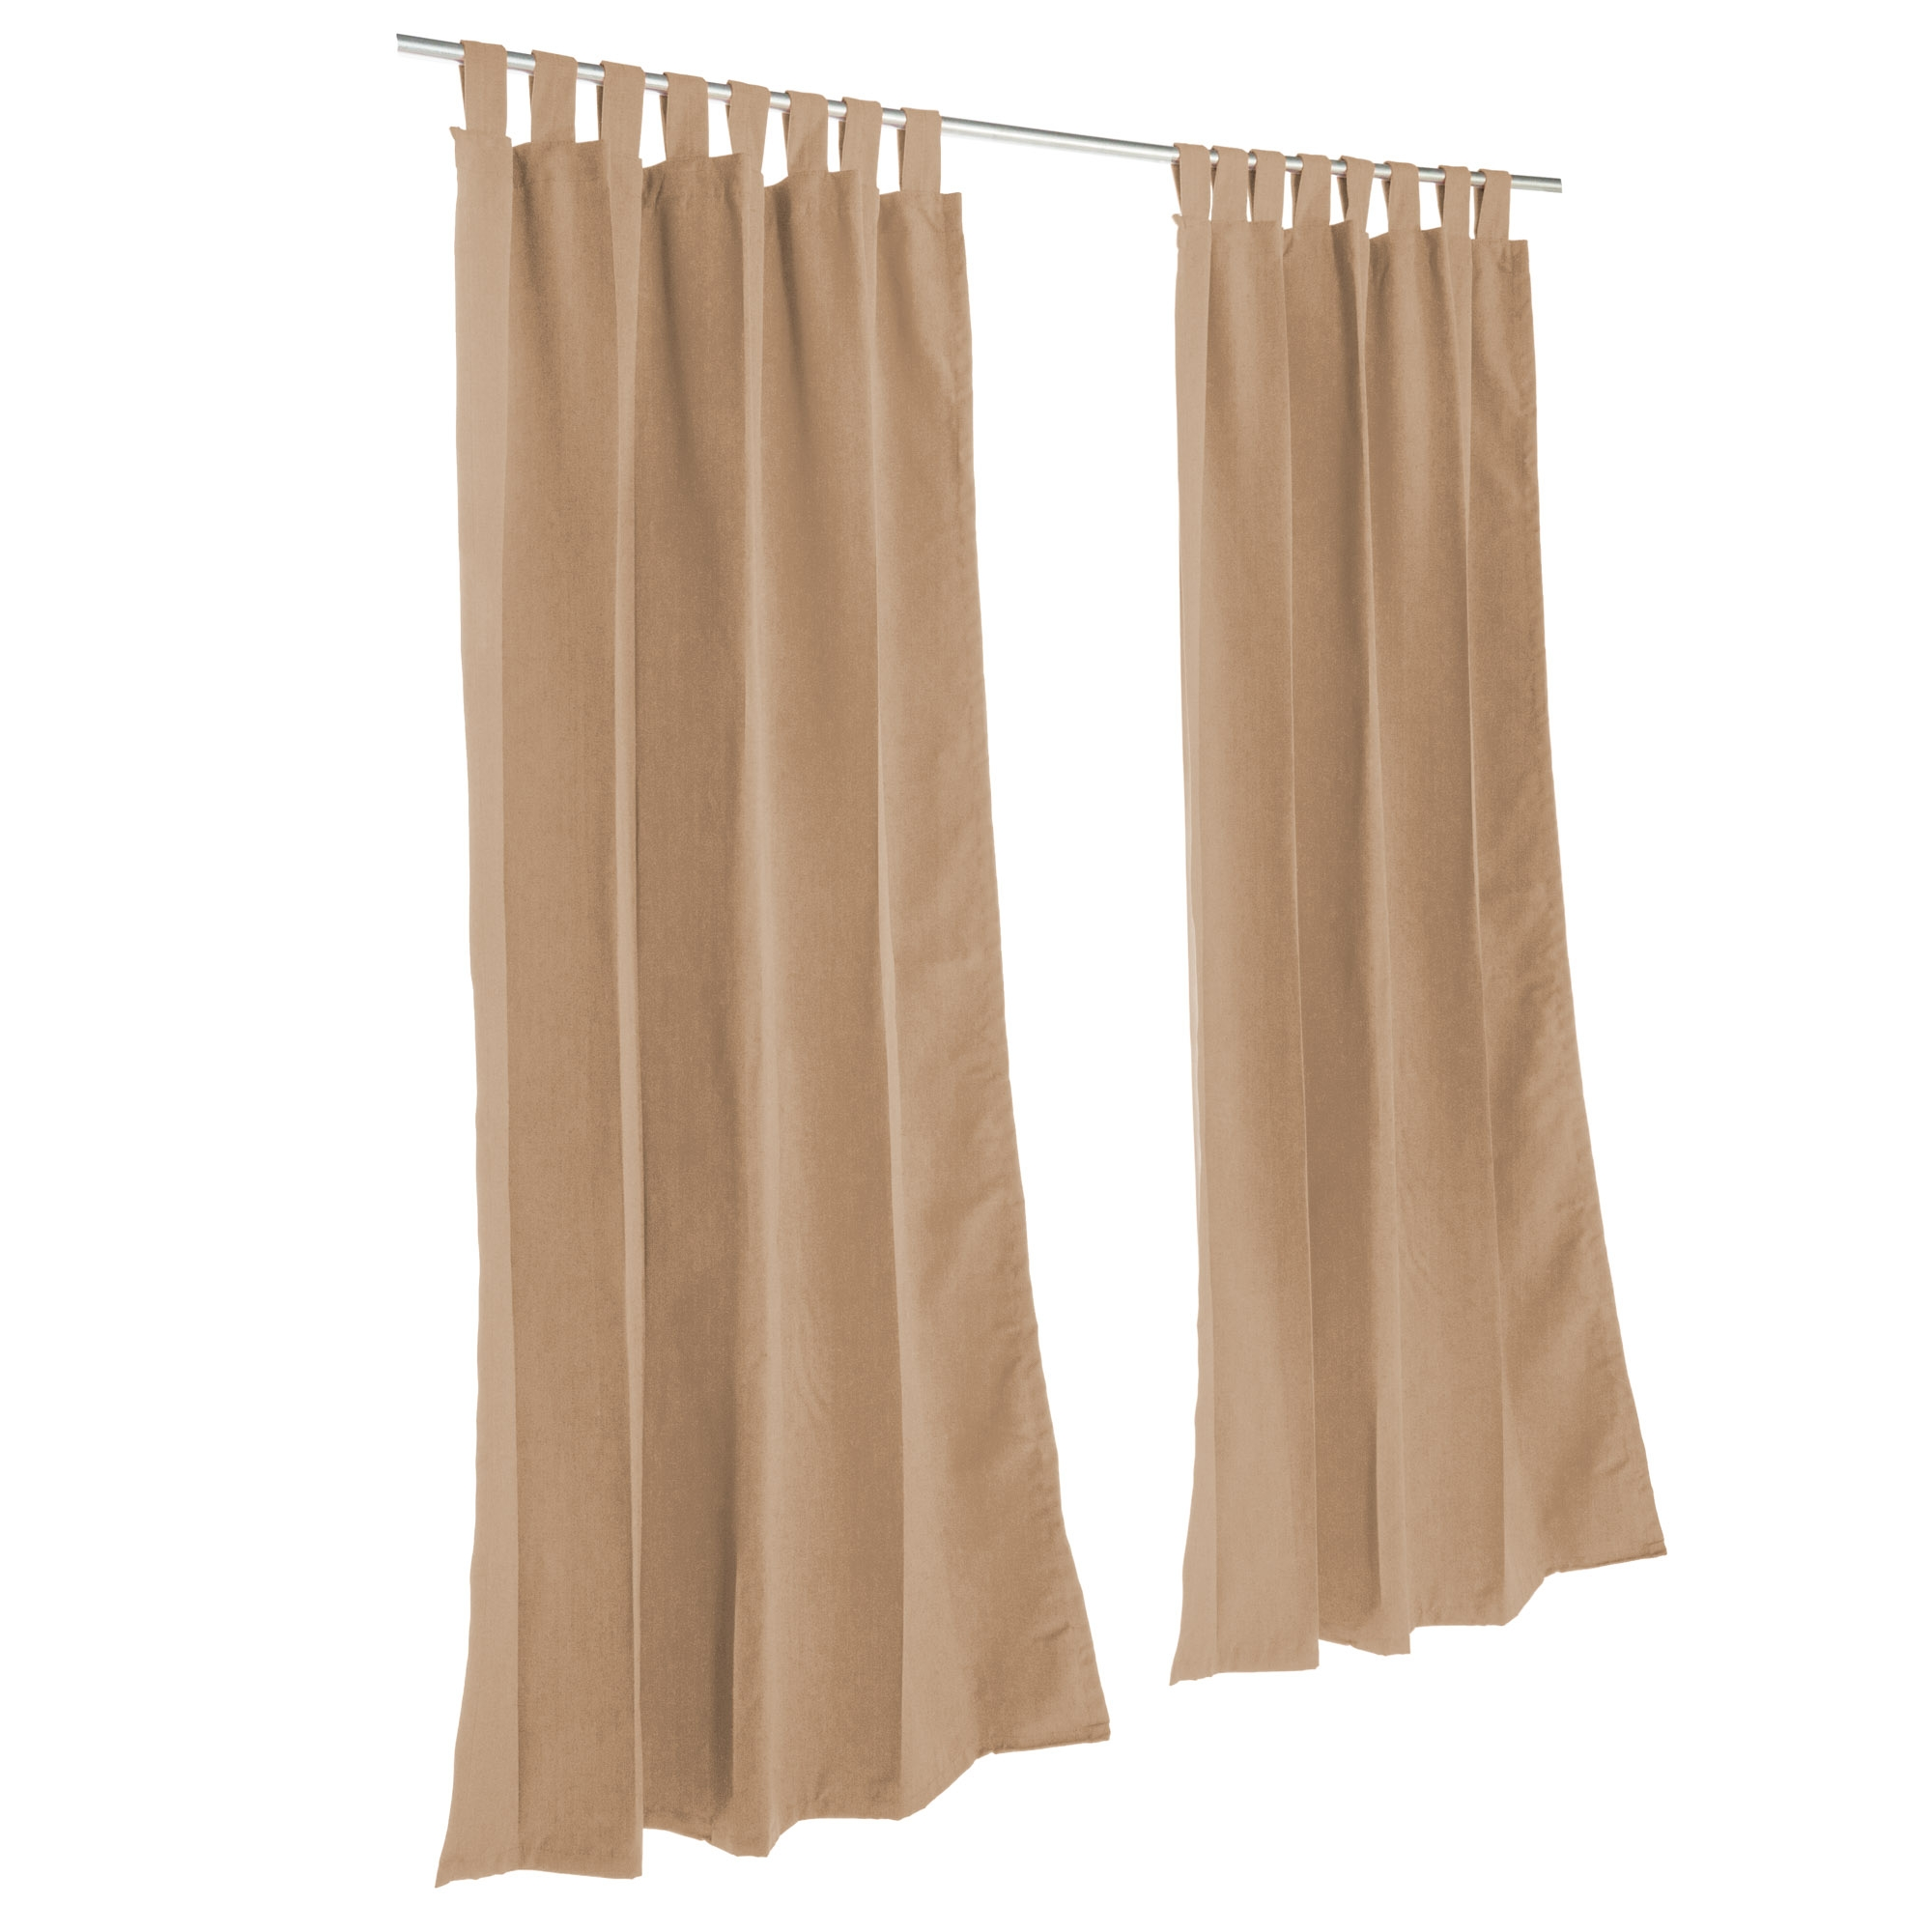 outdoor curtains sunbrella photo - 8